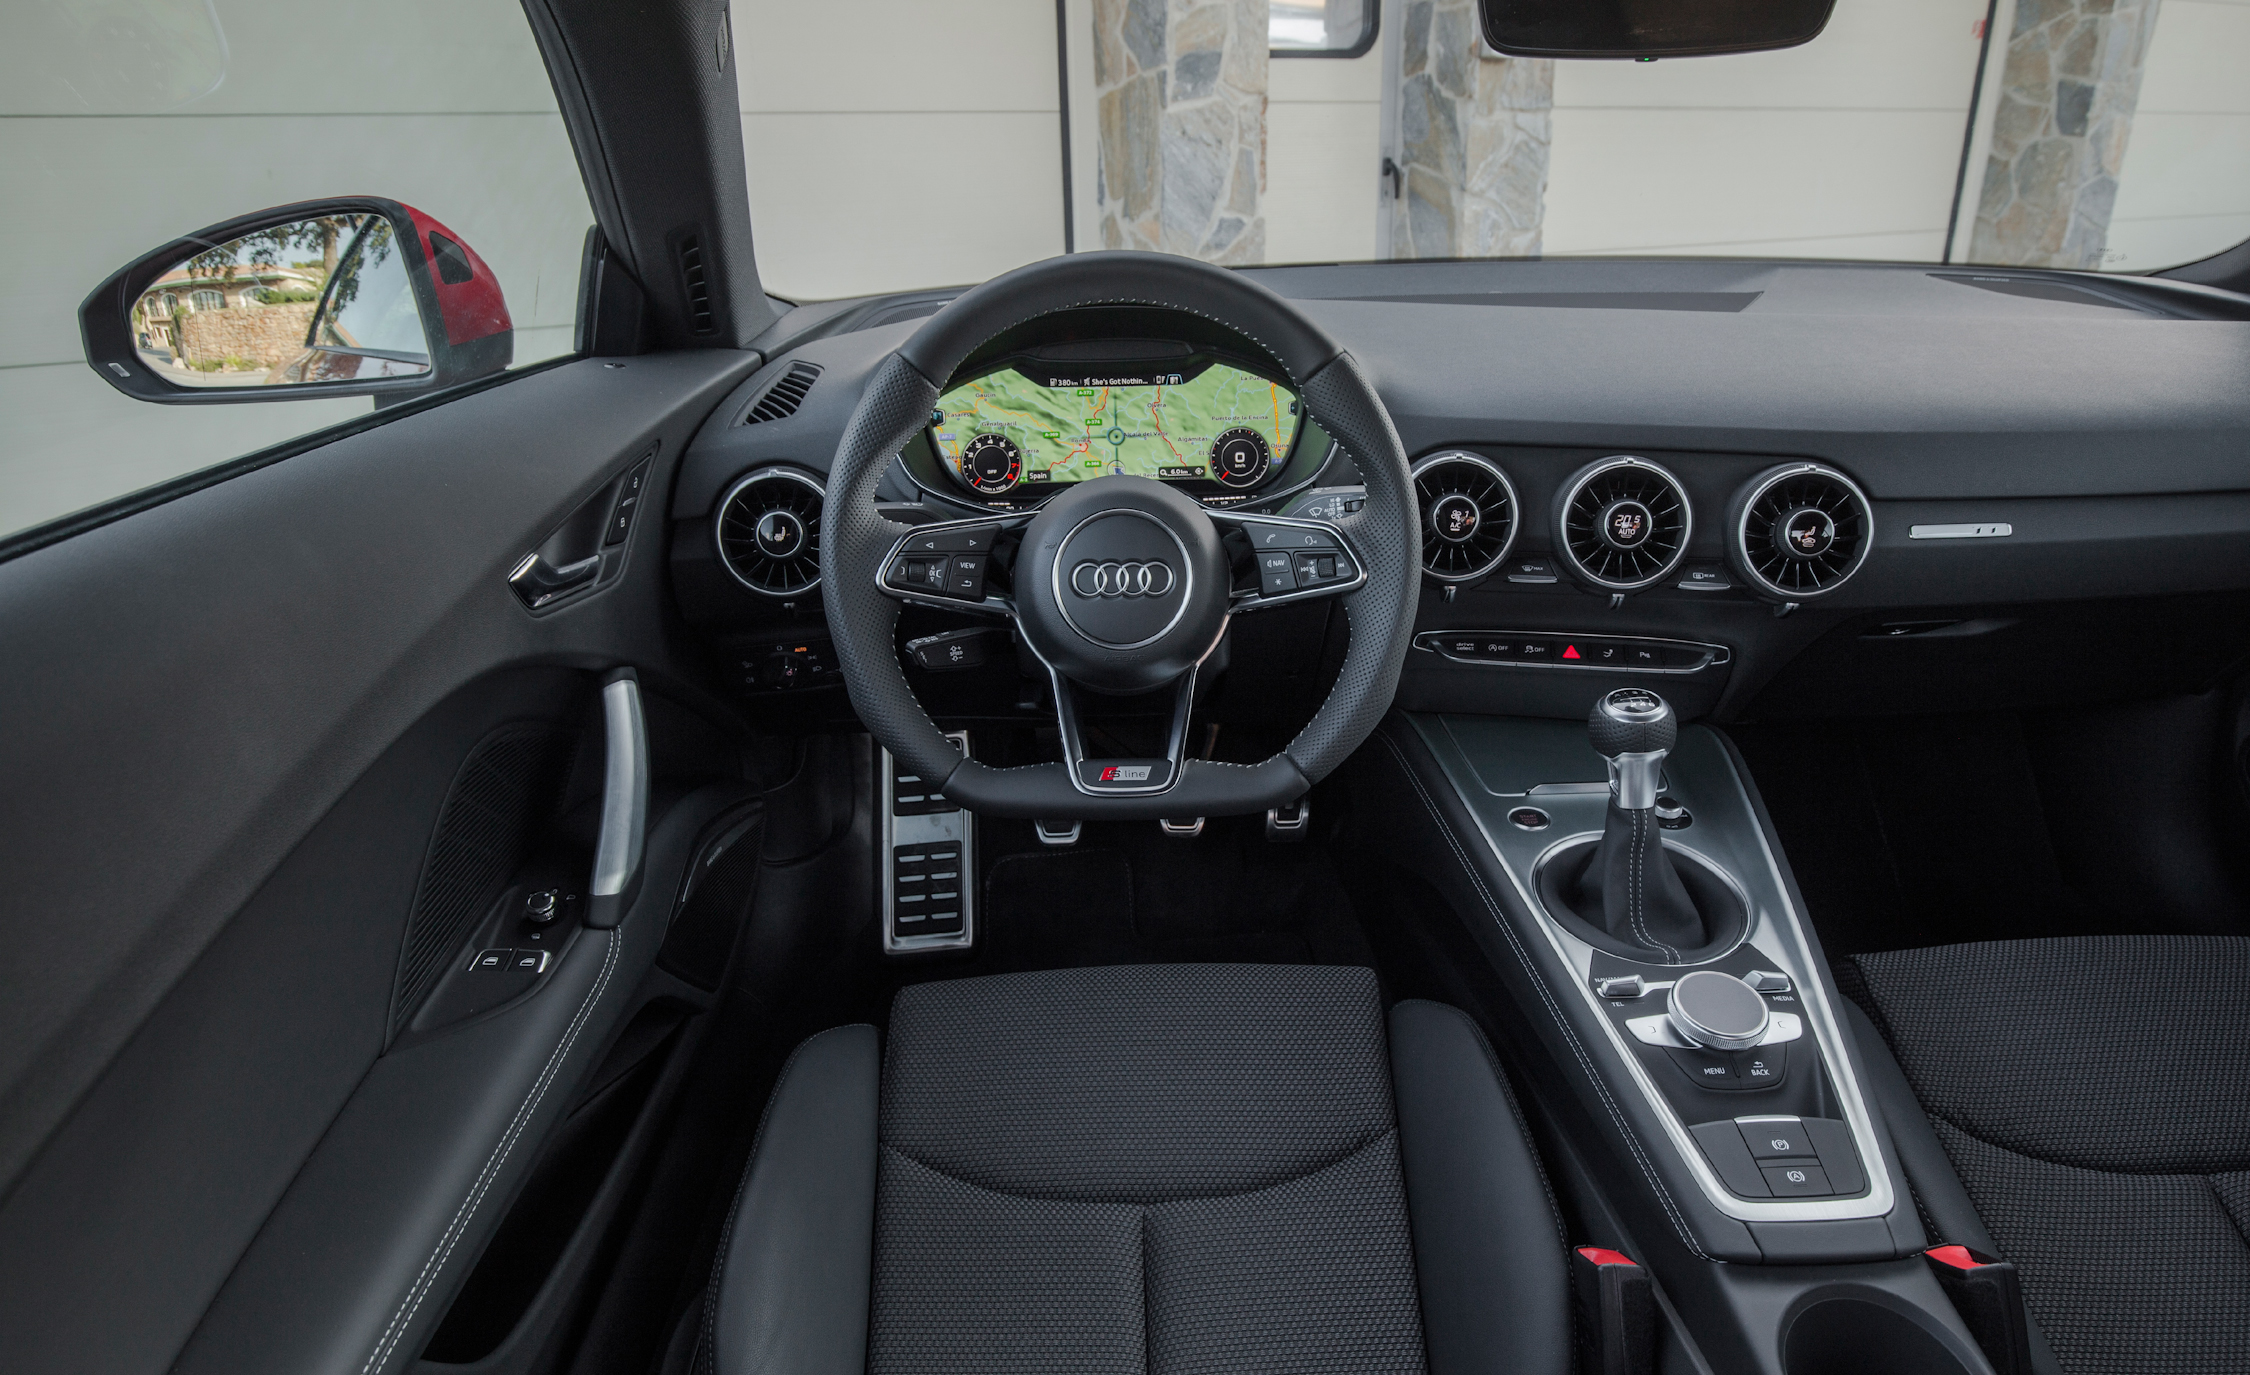 2016 Audi TT Coupe Interior Cockpit